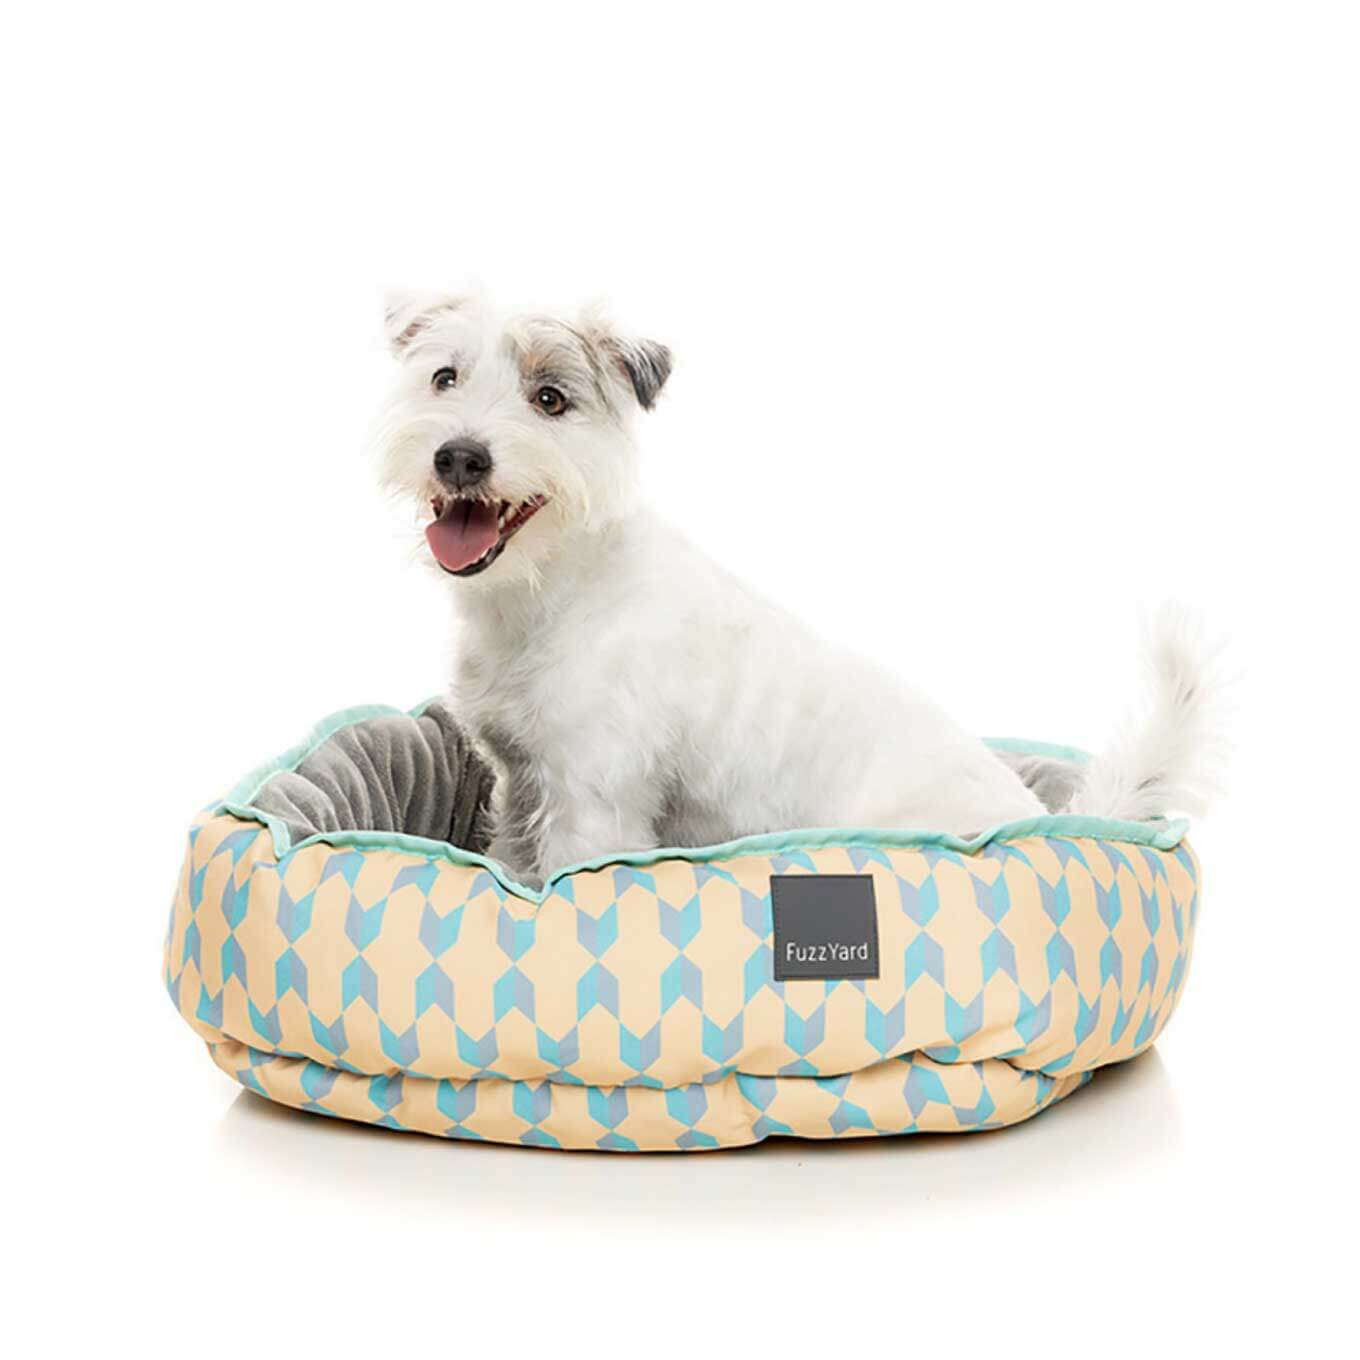 FuzzYard Chelsea Reversible Pet Bed - Beds, Dogs, FuzzYard, Latte, New Dog - Vanillapup - Online Pet Shop